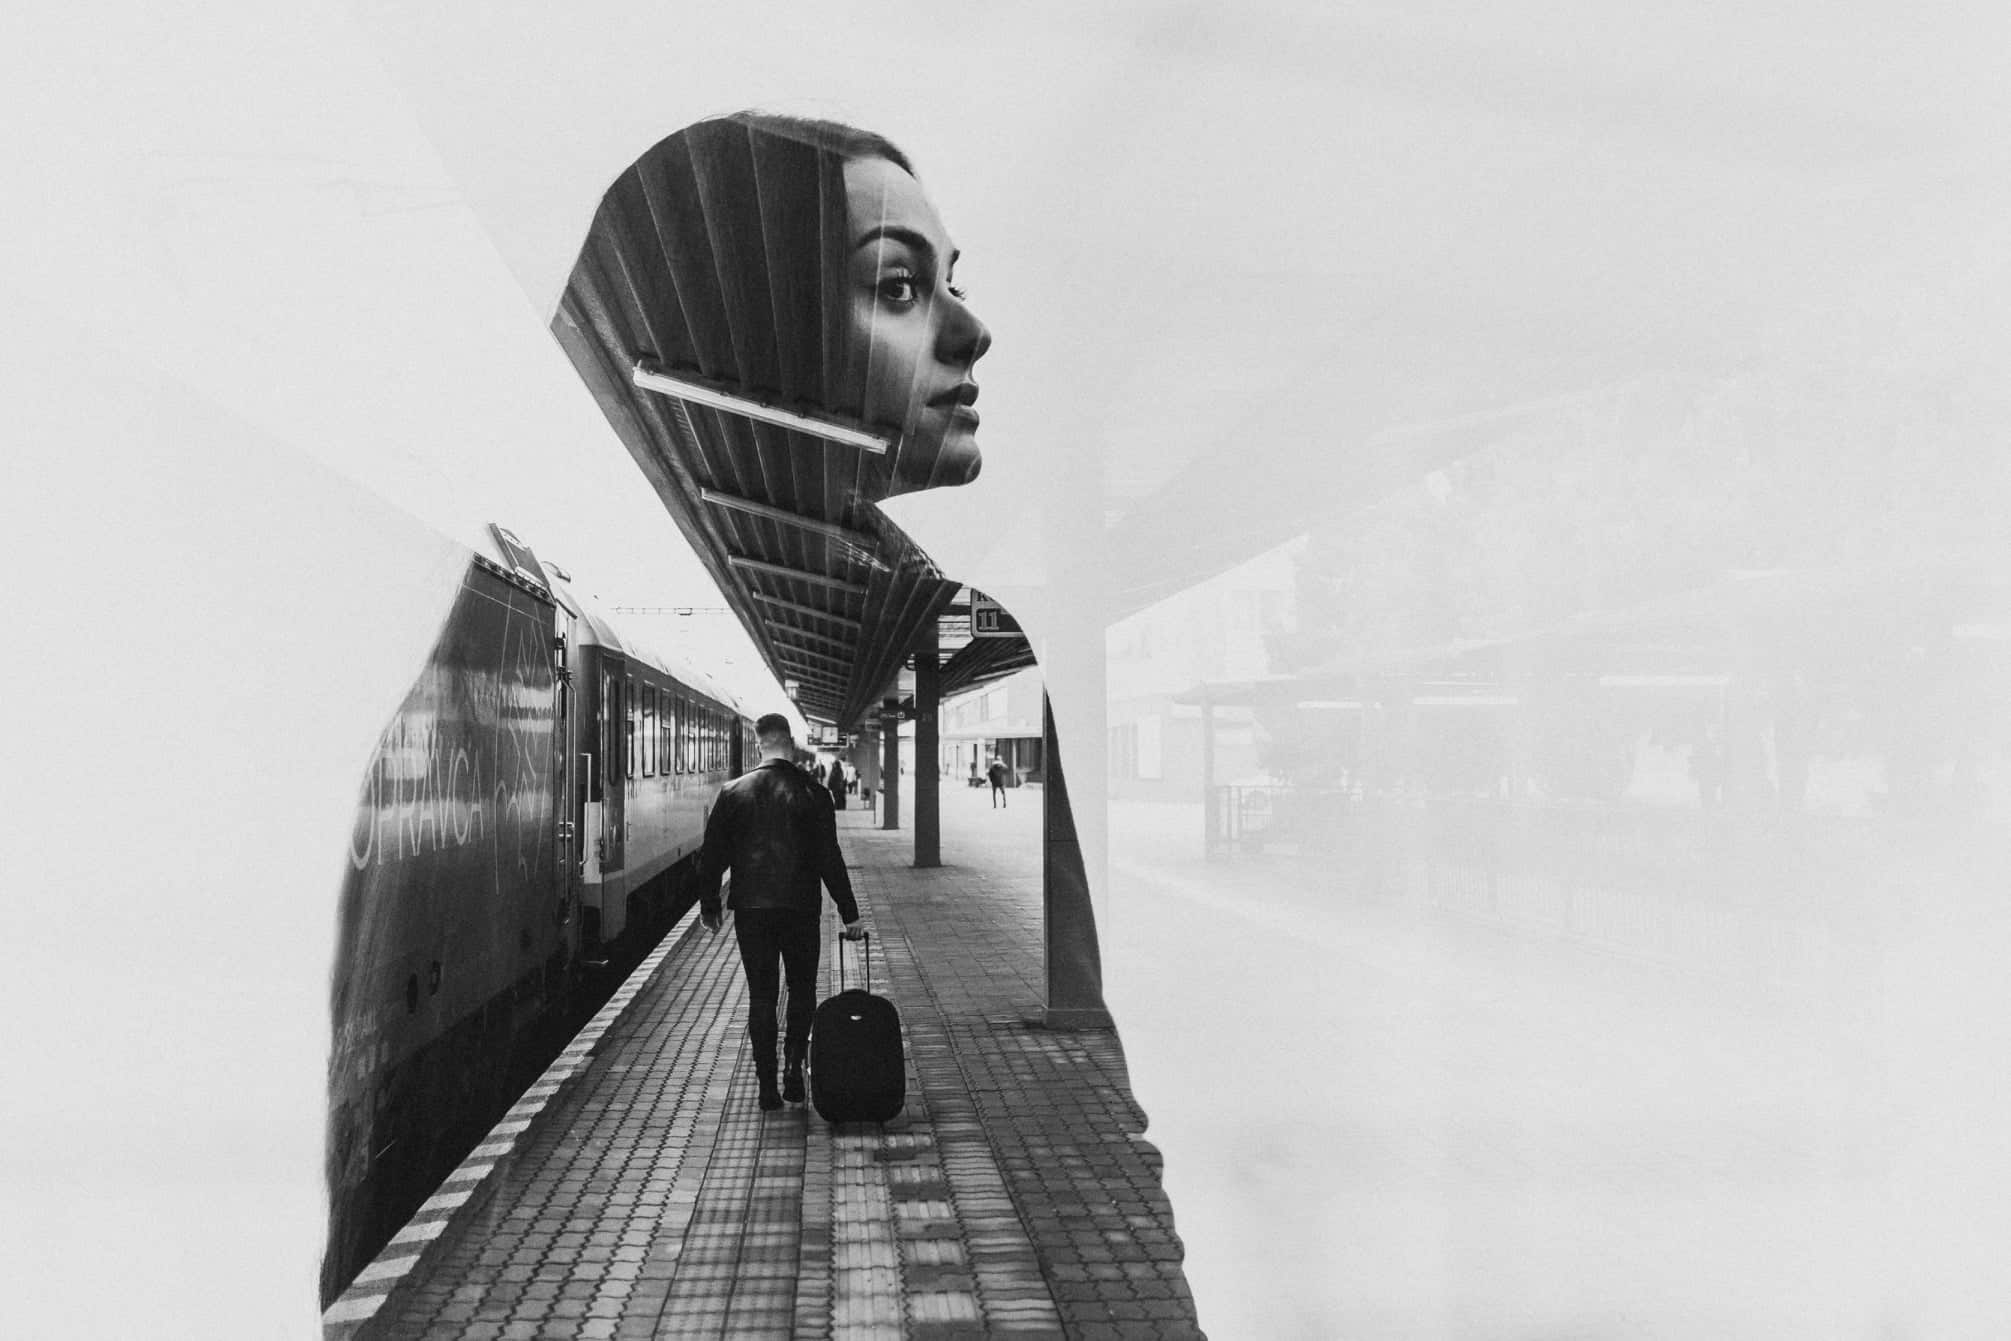 a black and white double exposure of a man and woman is a sort of creative photography